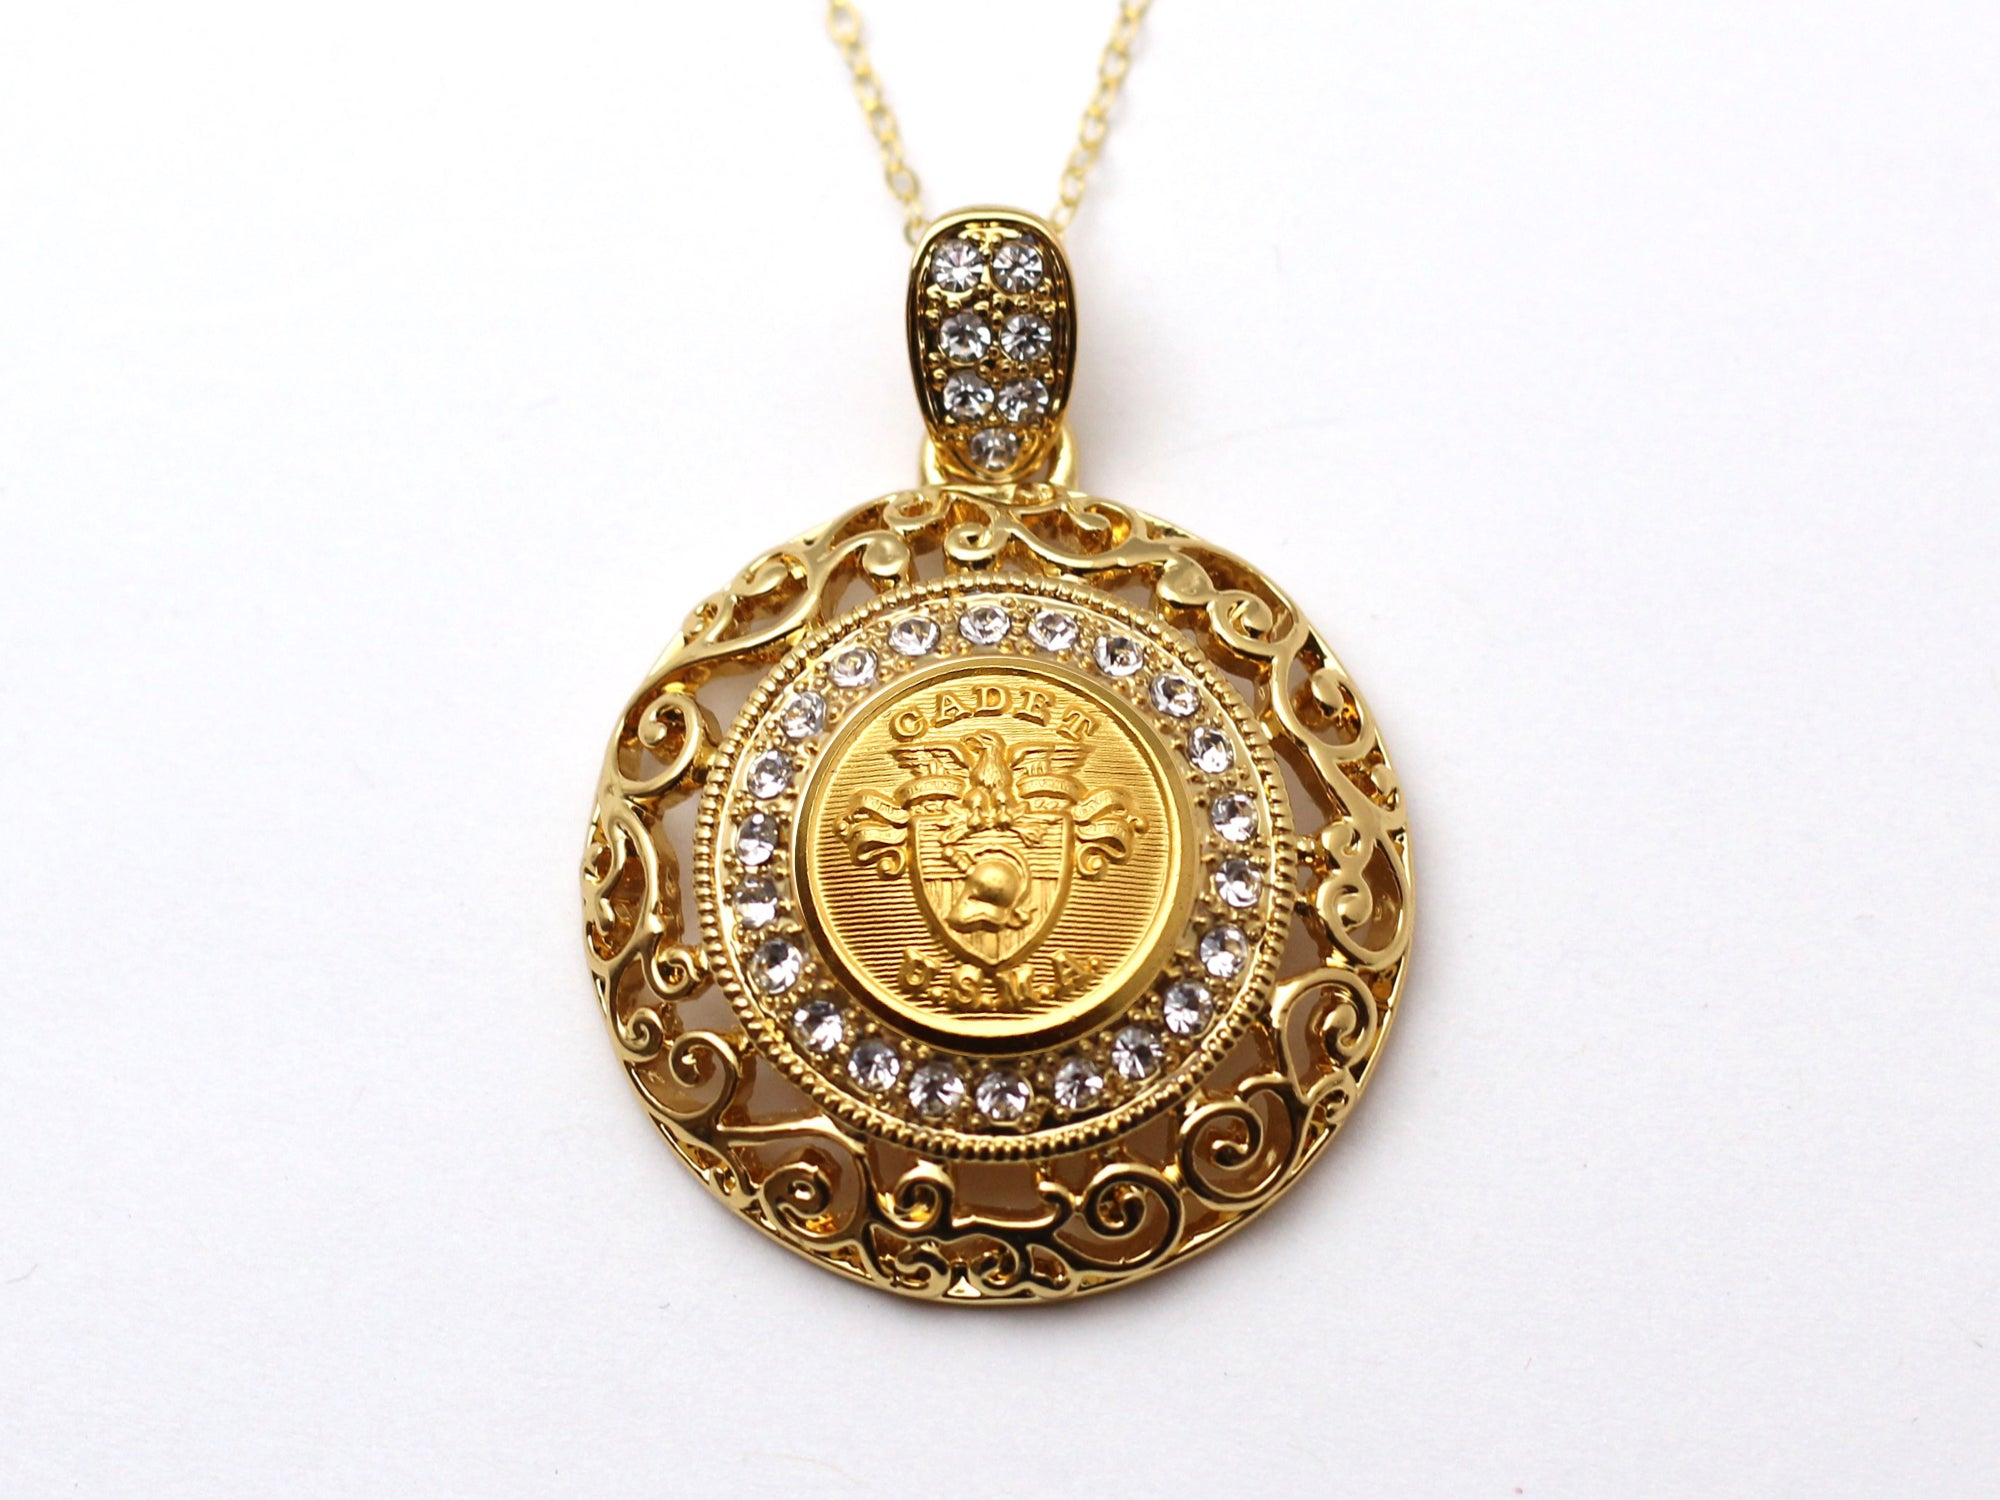 USMA Button Necklace - Large Gold Rhinestone Pendant